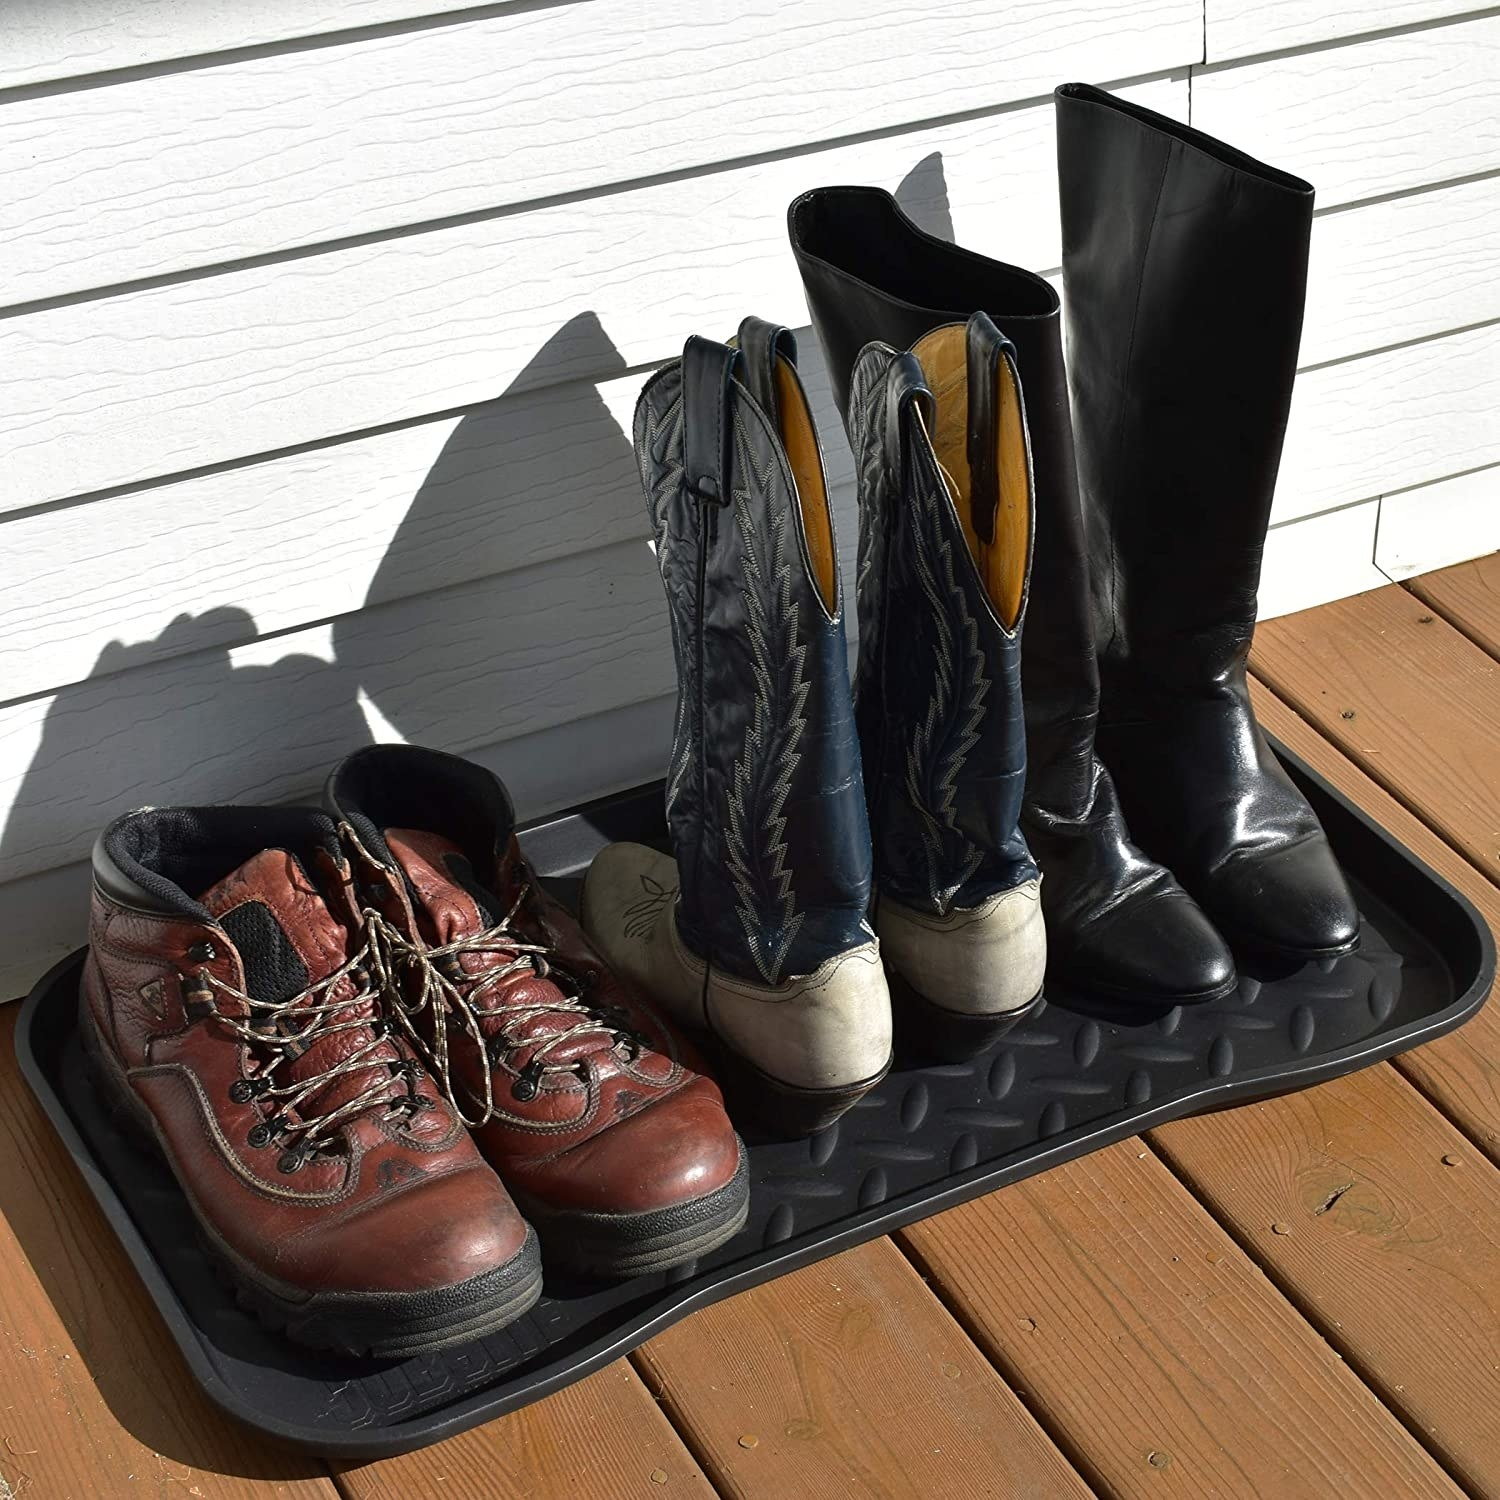 Three pairs of boots on a tray on a porch